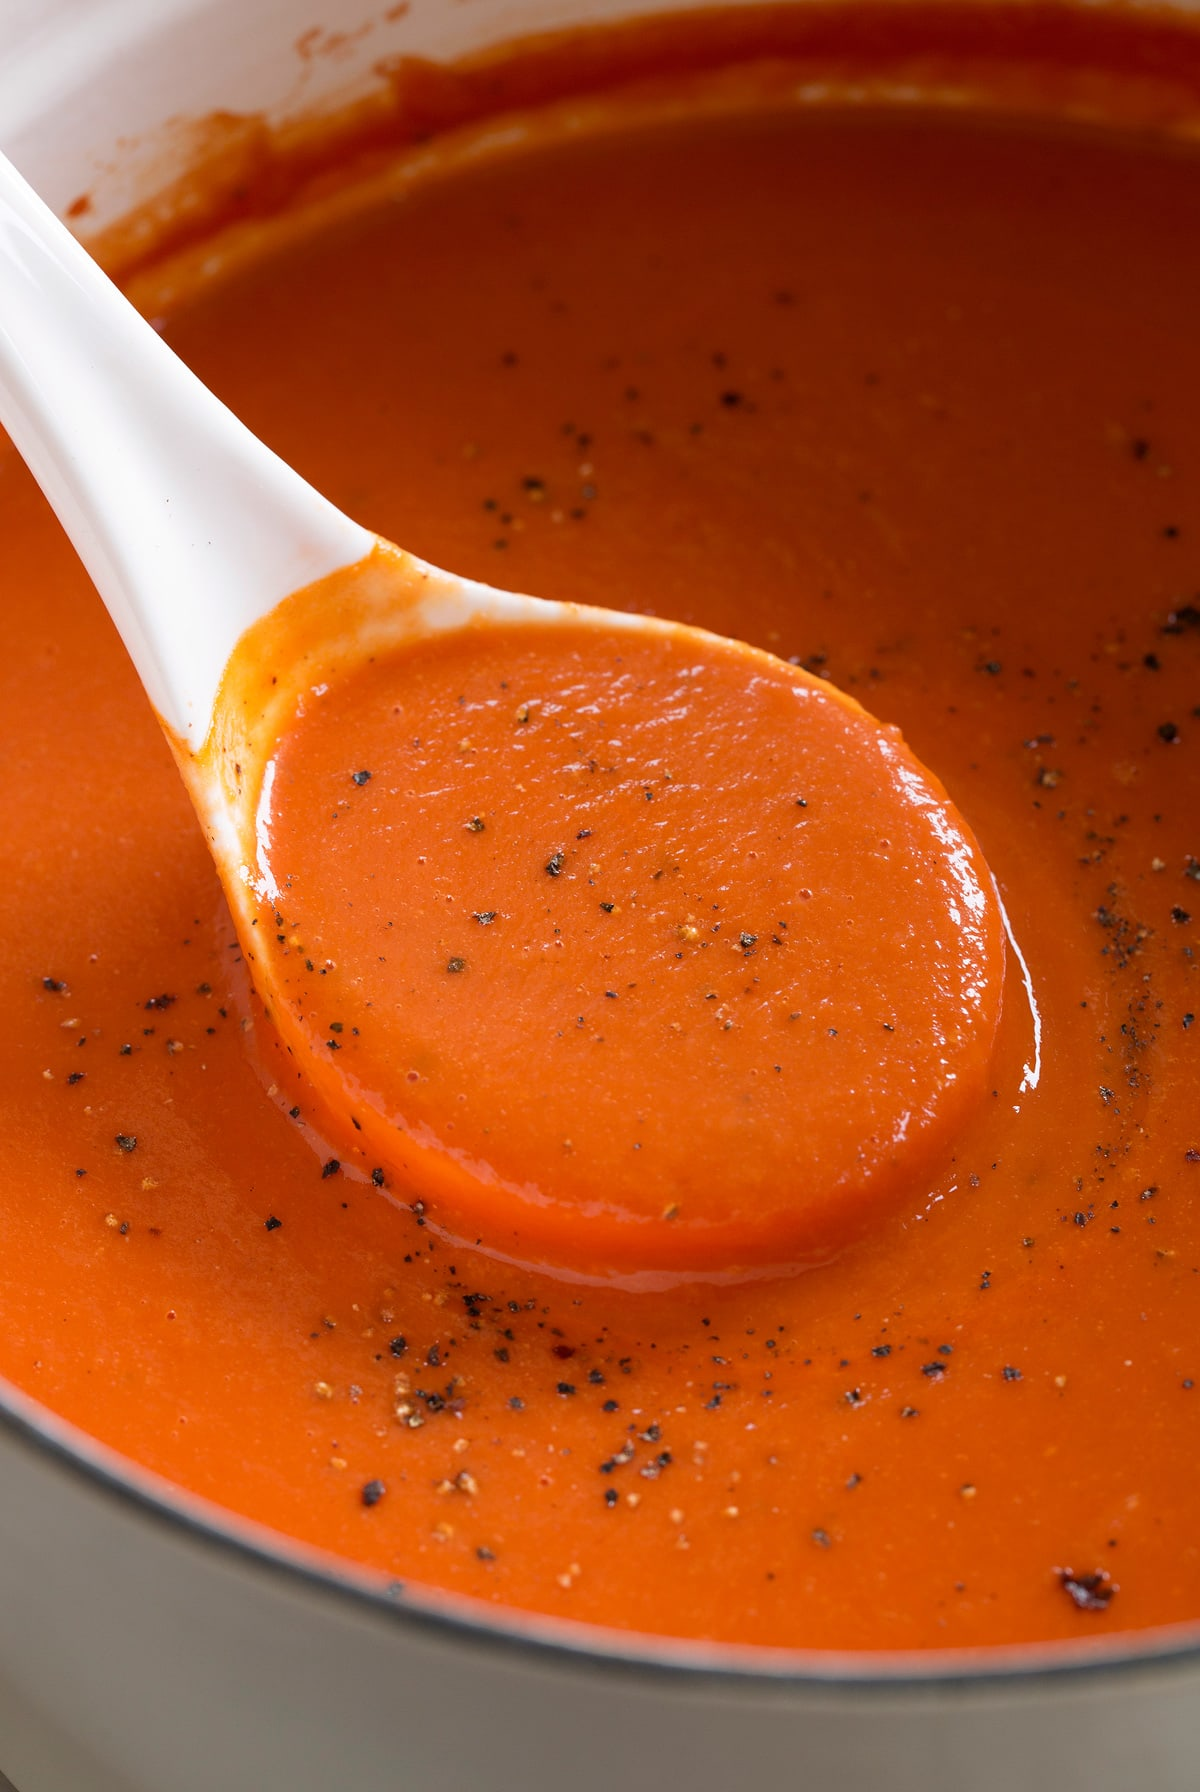 Ladle filled with homemade tomato soup.